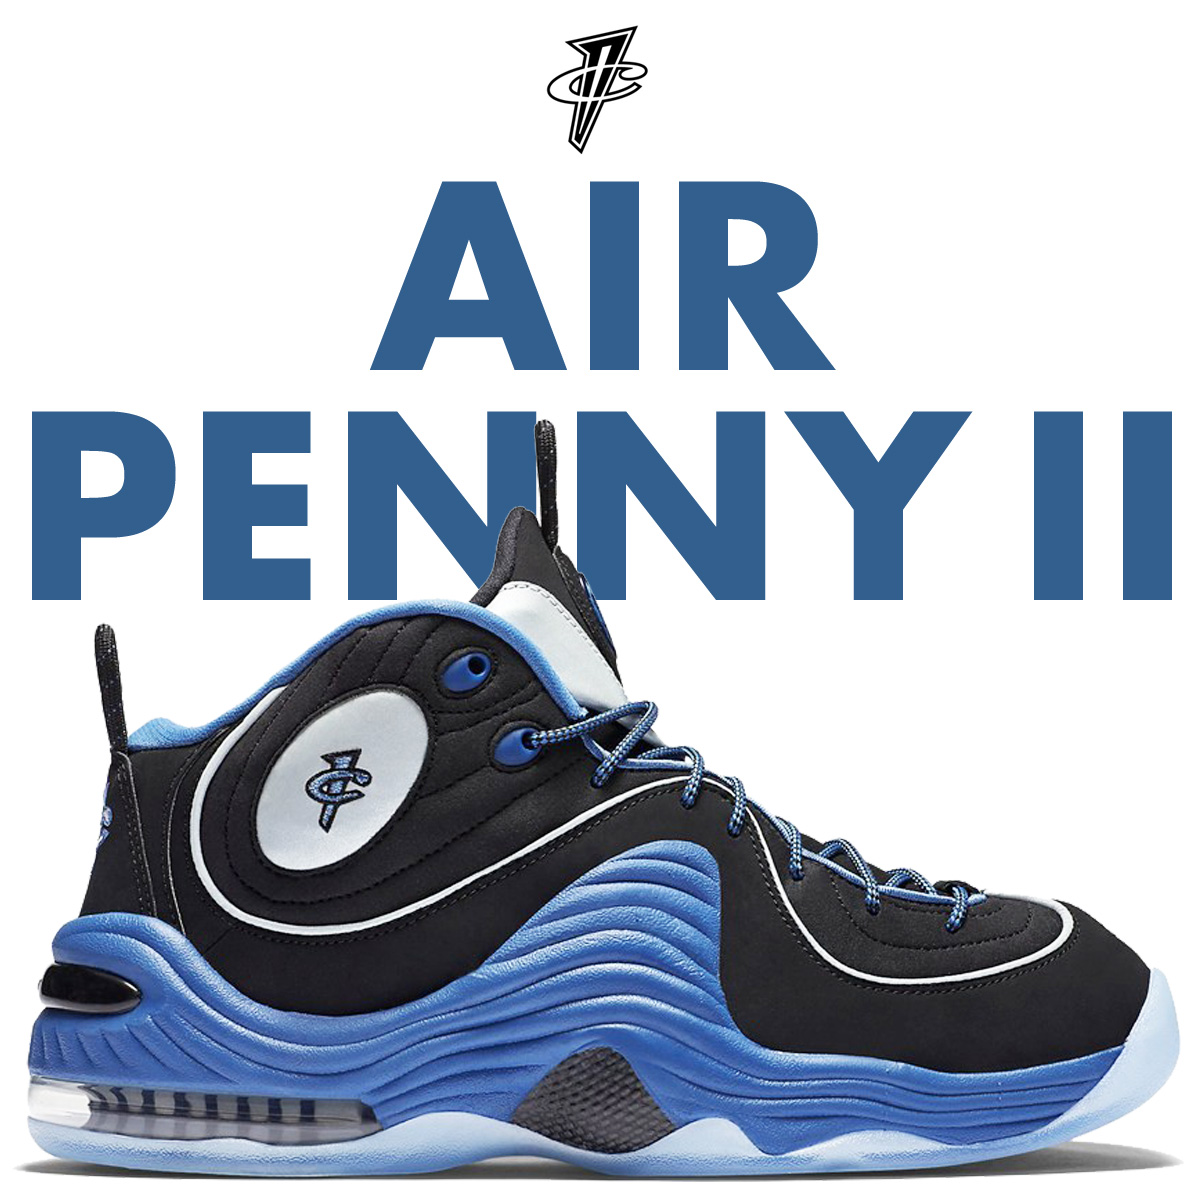 Nike NIKE air penny 2 sneakers AIR PENNY 2 333,886-005 men's shoes blue  [7/6 Shinnyu load]